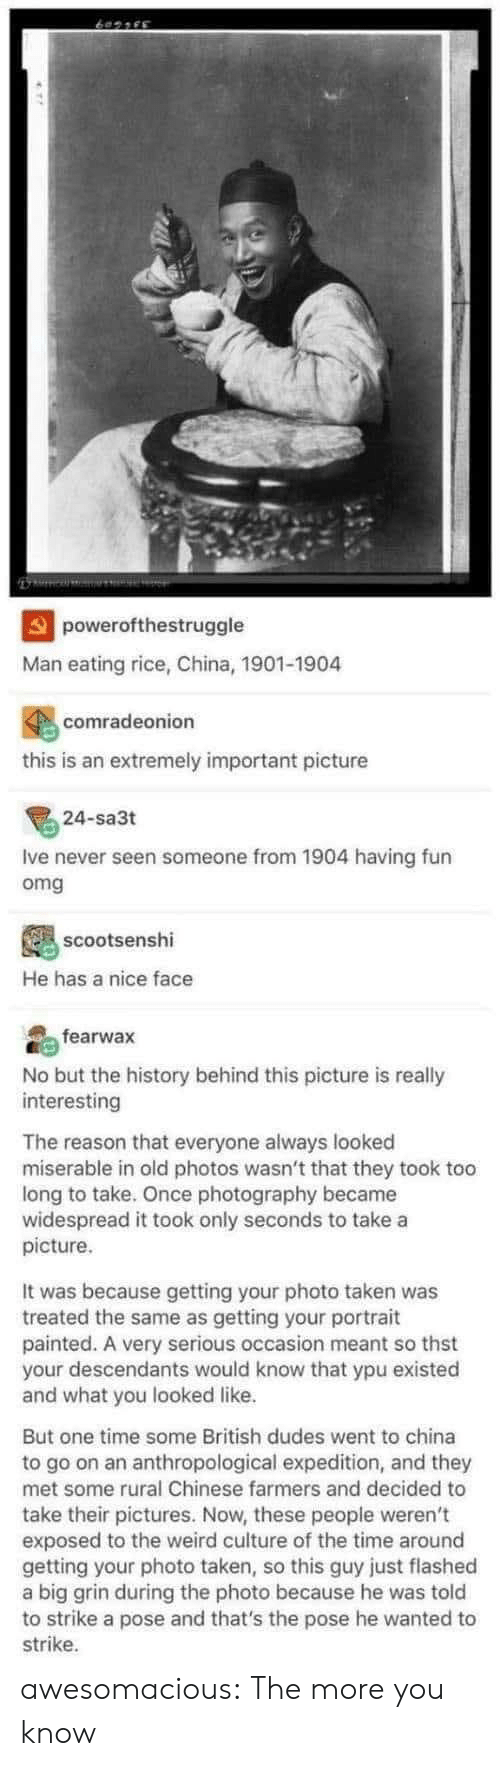 Omg, Taken, and The More You Know: powerofthestruggle  Man eating rice, China, 1901-1904  comradeonion  this is an extremely important picture  24-sa3t  Ive never seen someone from 1904 having fun  omg  scootsenshi  He has a nice face  fearwax  No but the history behind this picture is really  interesting  The reason that everyone always looked  miserable in old photos wasn't that they took too  long to take. Once photography became  widespread it took only seconds to take a  picture  It was because getting your photo taken was  treated the same as getting your portrait  painted. A very serious occasion meant so thst  your descendants would know that ypu existed  and what you looked like.  But one time some British dudes went to china  to go on an anthropological expedition, and they  met some rural Chinese farmers and decided to  take their pictures. Now, these people weren't  exposed to the weird culture of the time around  getting your photo taken, so this guy just flashed  a big grin during the photo because he was told  to strike a pose and that's the pose he wanted to  strike awesomacious:  The more you know